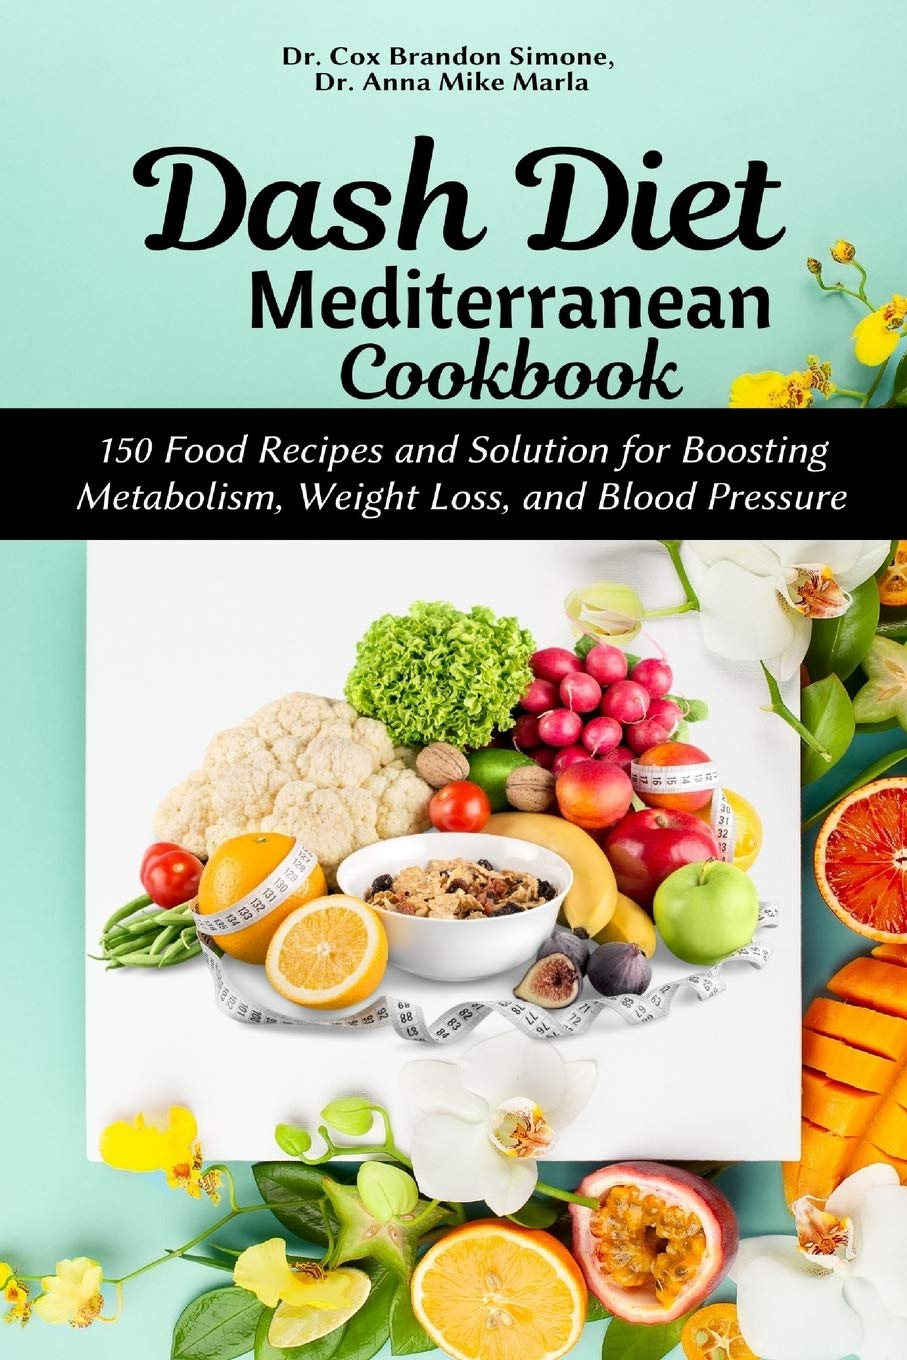 Dash Diet Mediterranean Cookbook: 150 Food Recipes and Solution for Boosting Metabolism, Weight Loss, and Blood Pressure